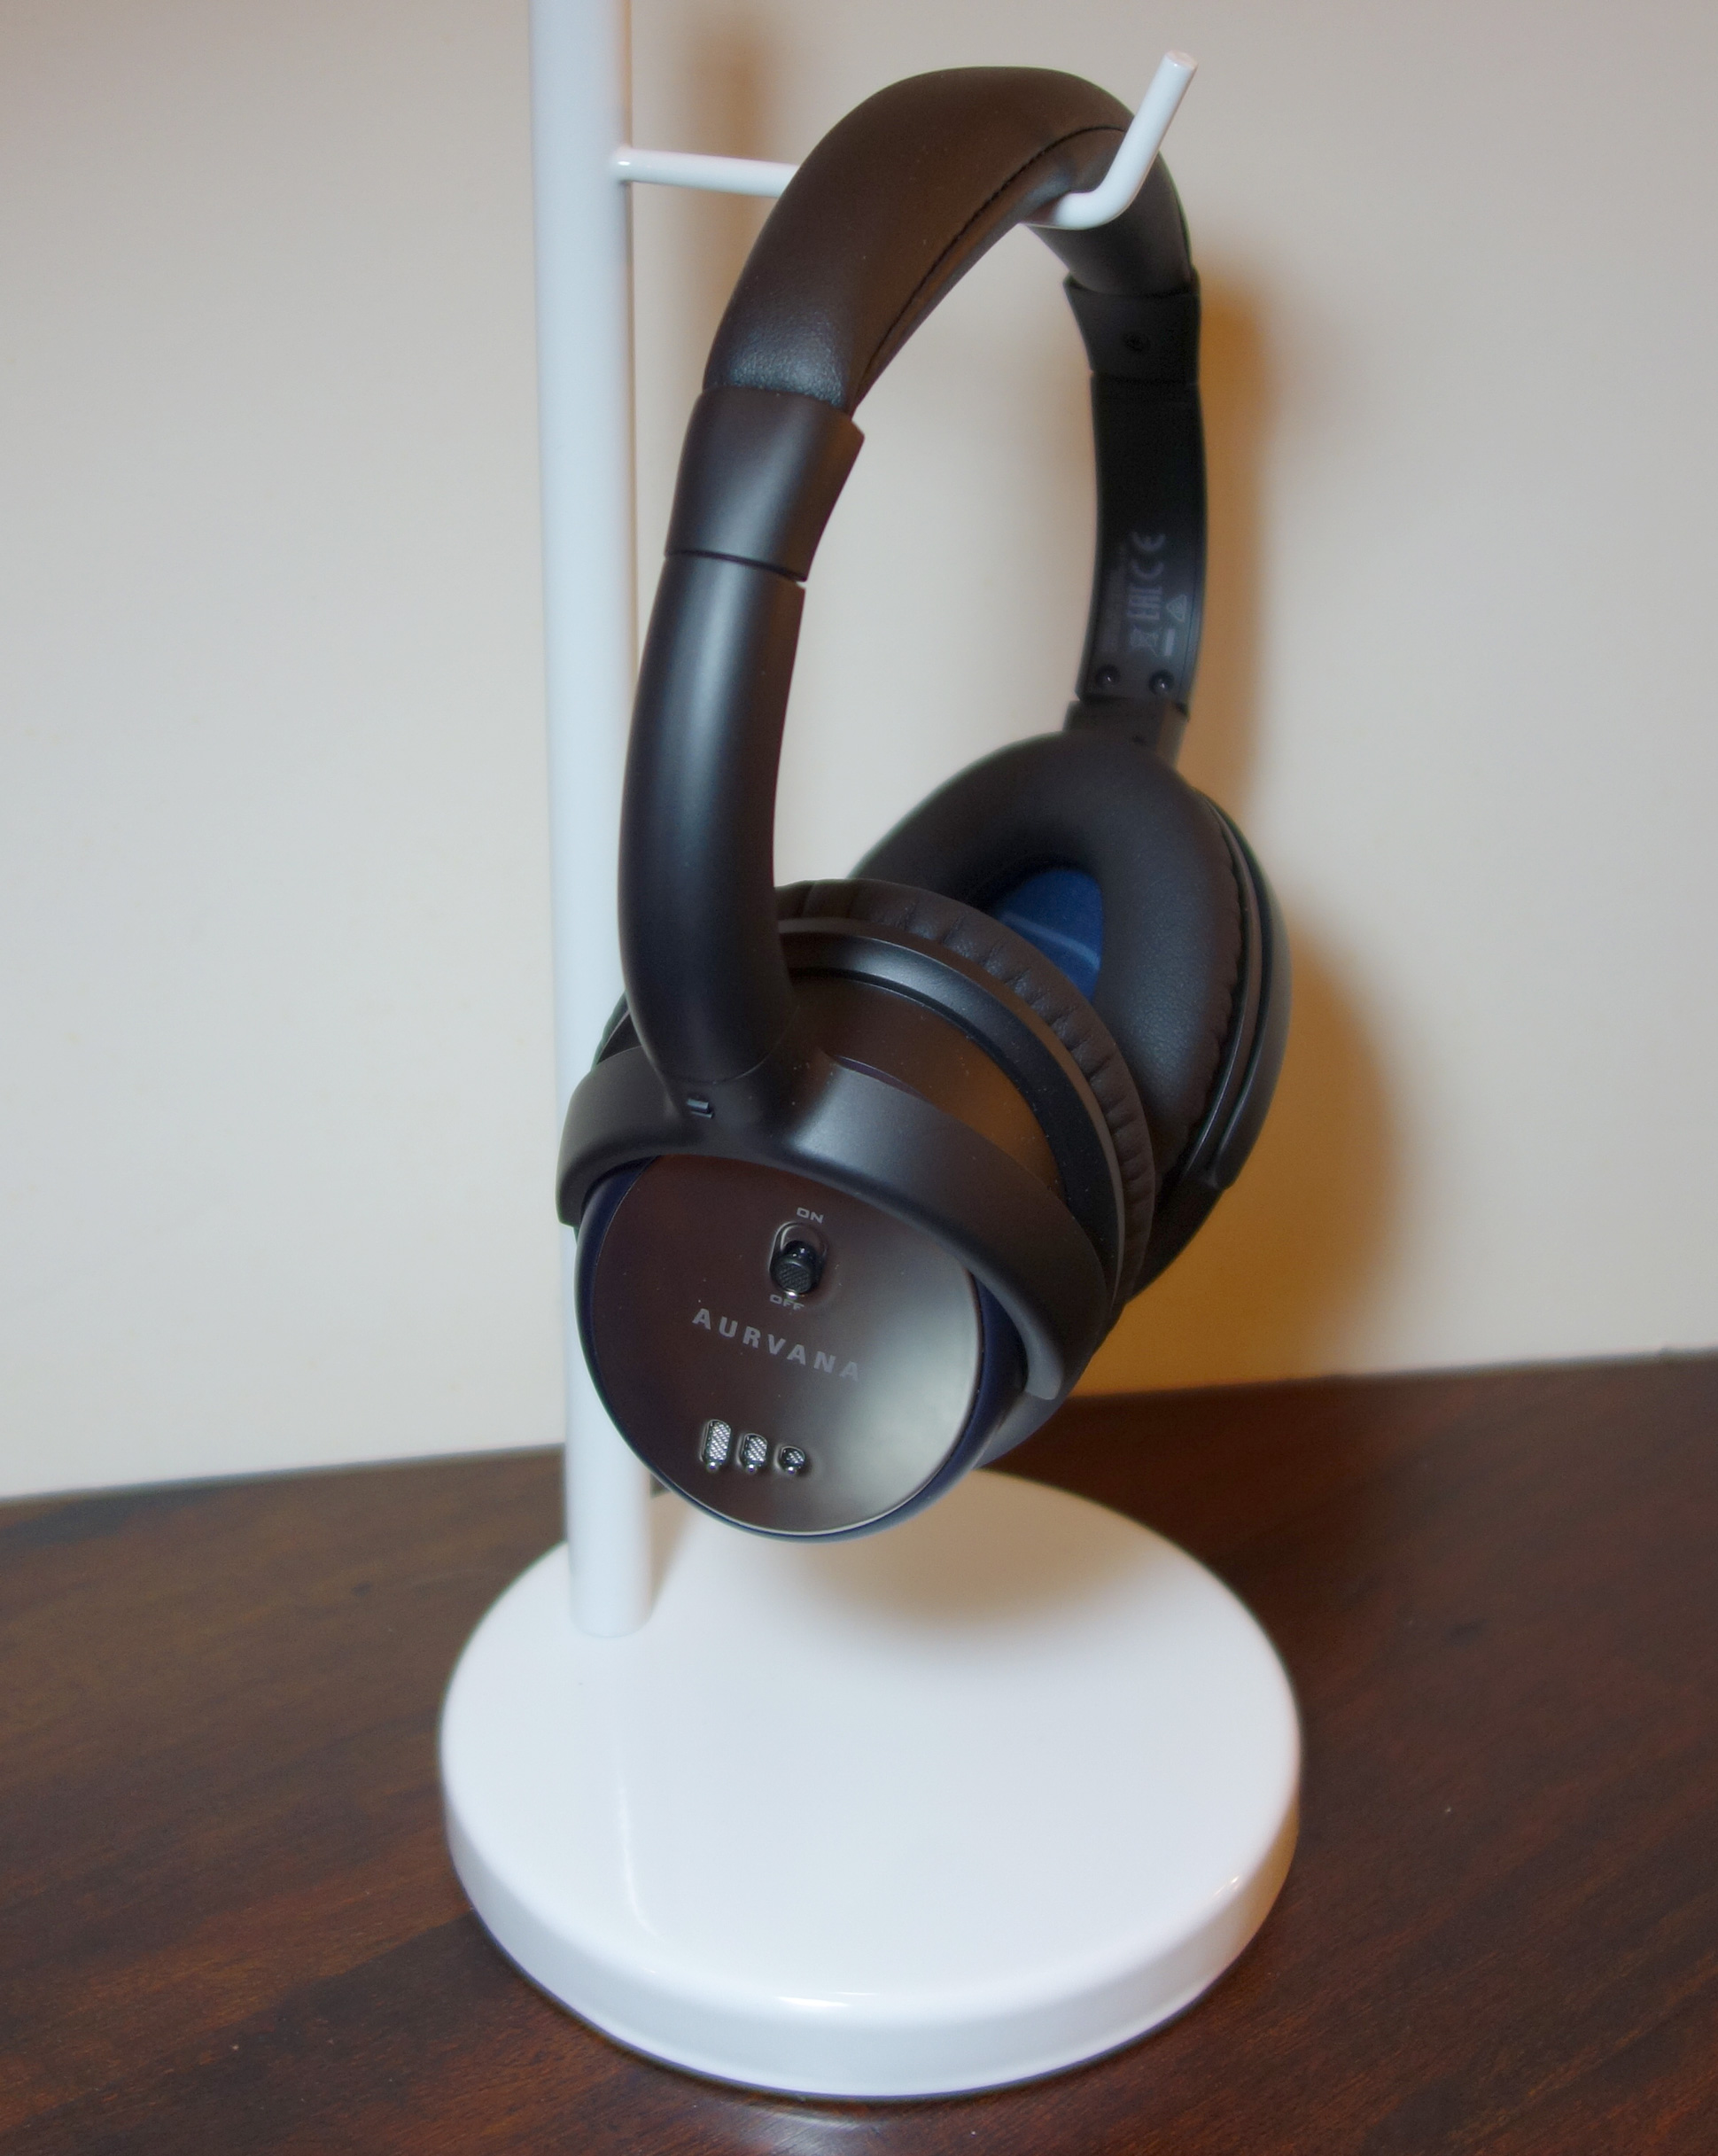 Creative Aurvana ANC Headphones